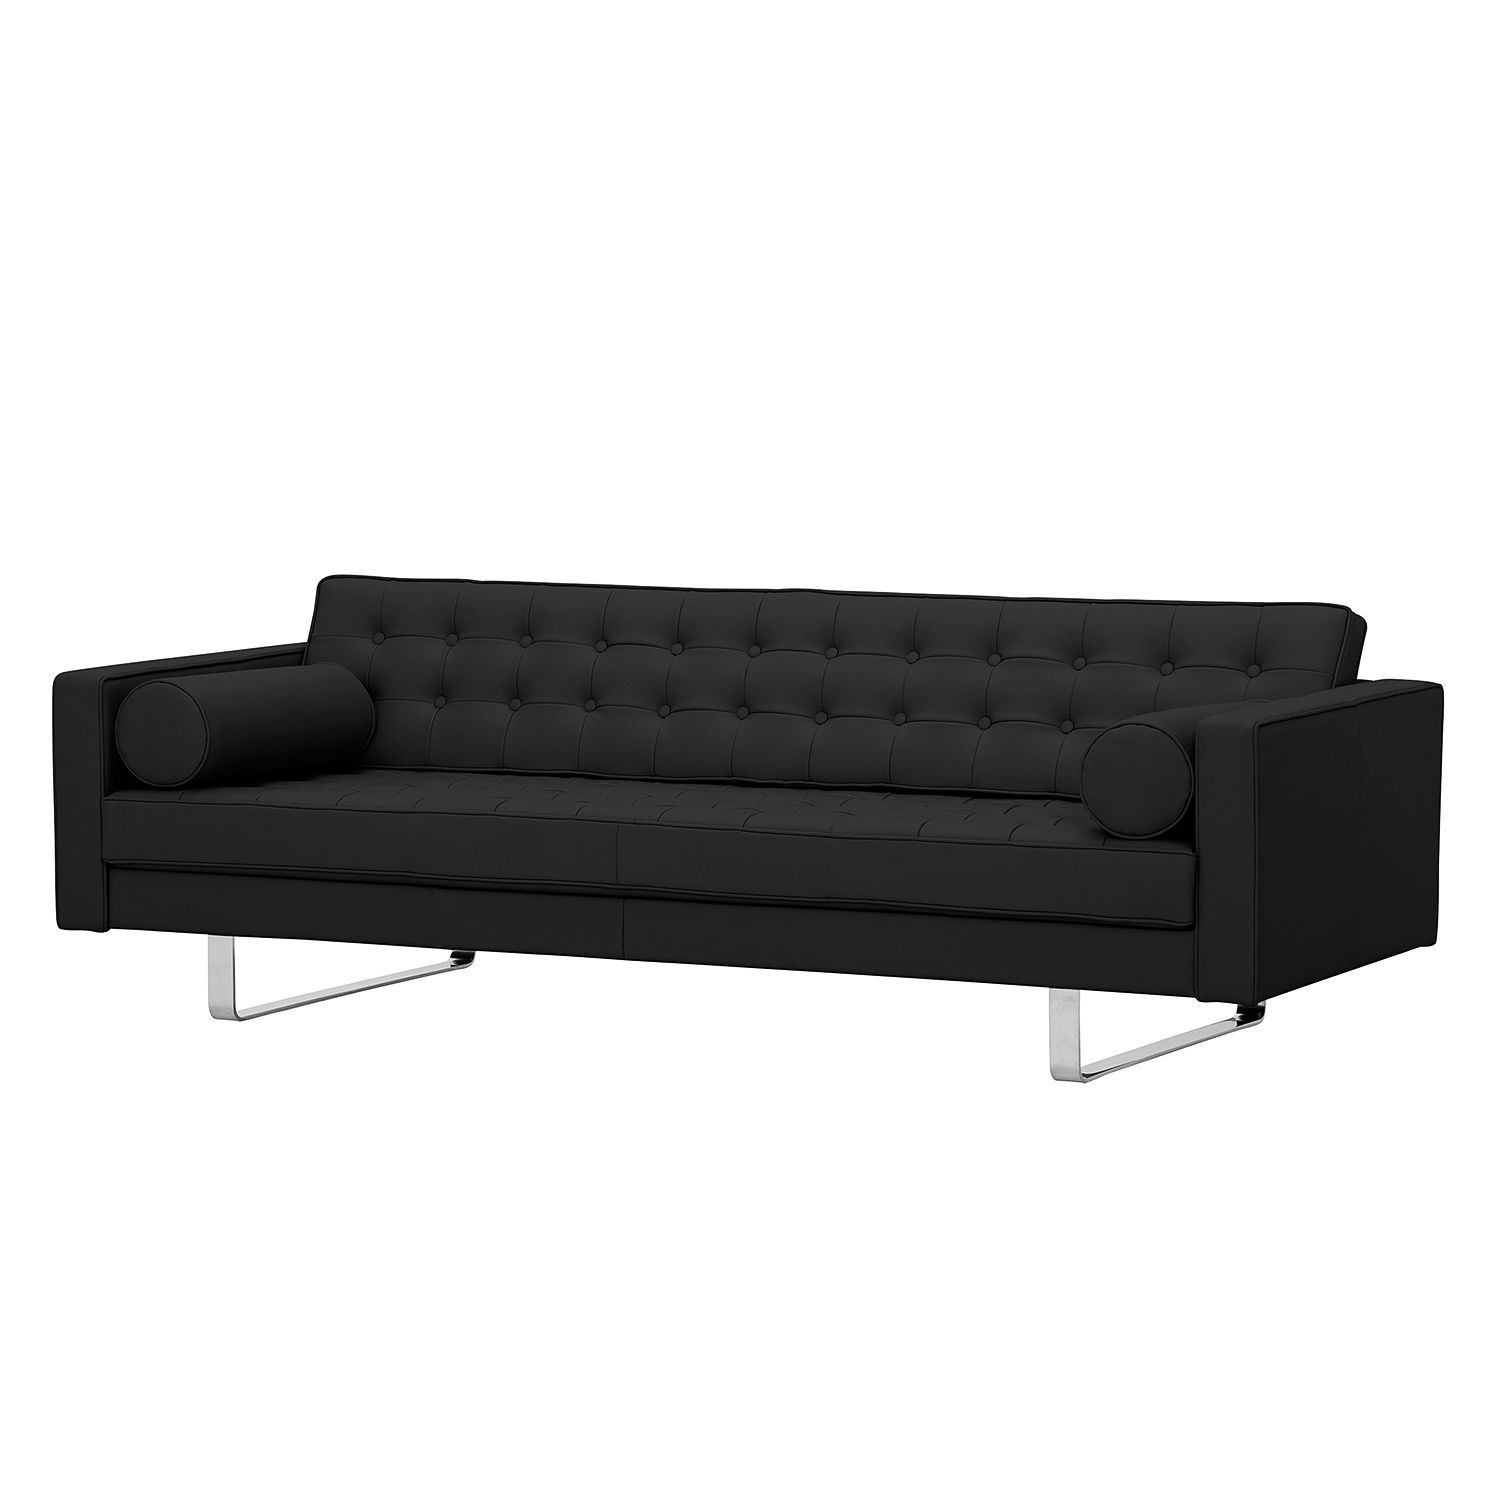 30 sparen sofa chelsea von studio copenhagen nur cherry m bel home24. Black Bedroom Furniture Sets. Home Design Ideas